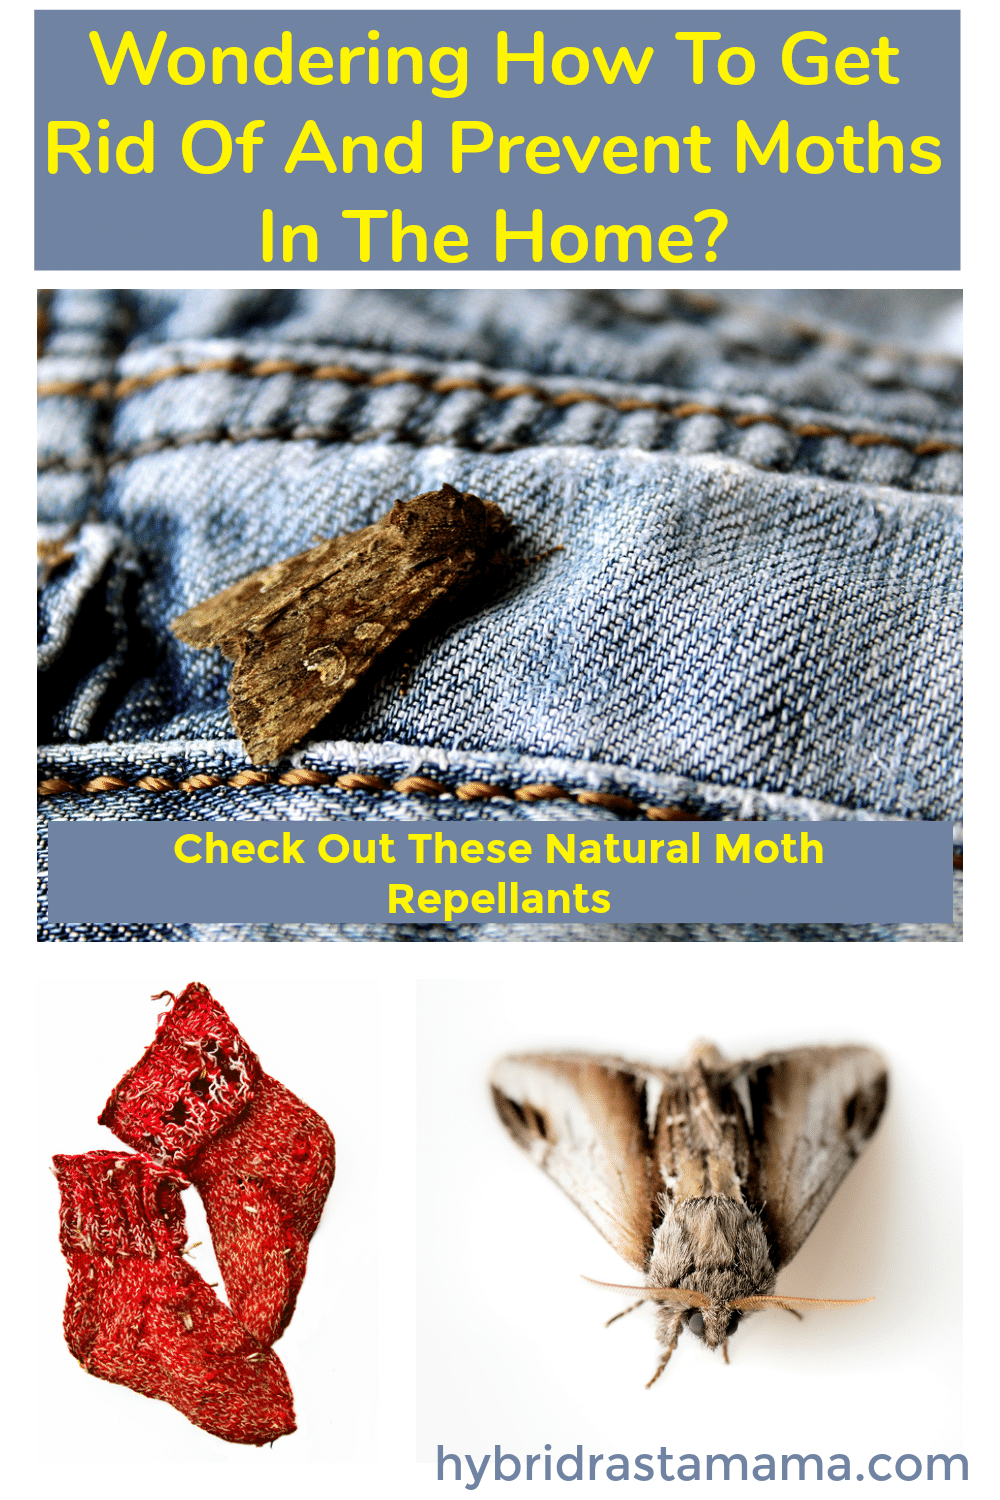 A moth on a pair of jeans as well as a pair of red holey socks. Natural moth repellents to get rid of moths is written in yellow